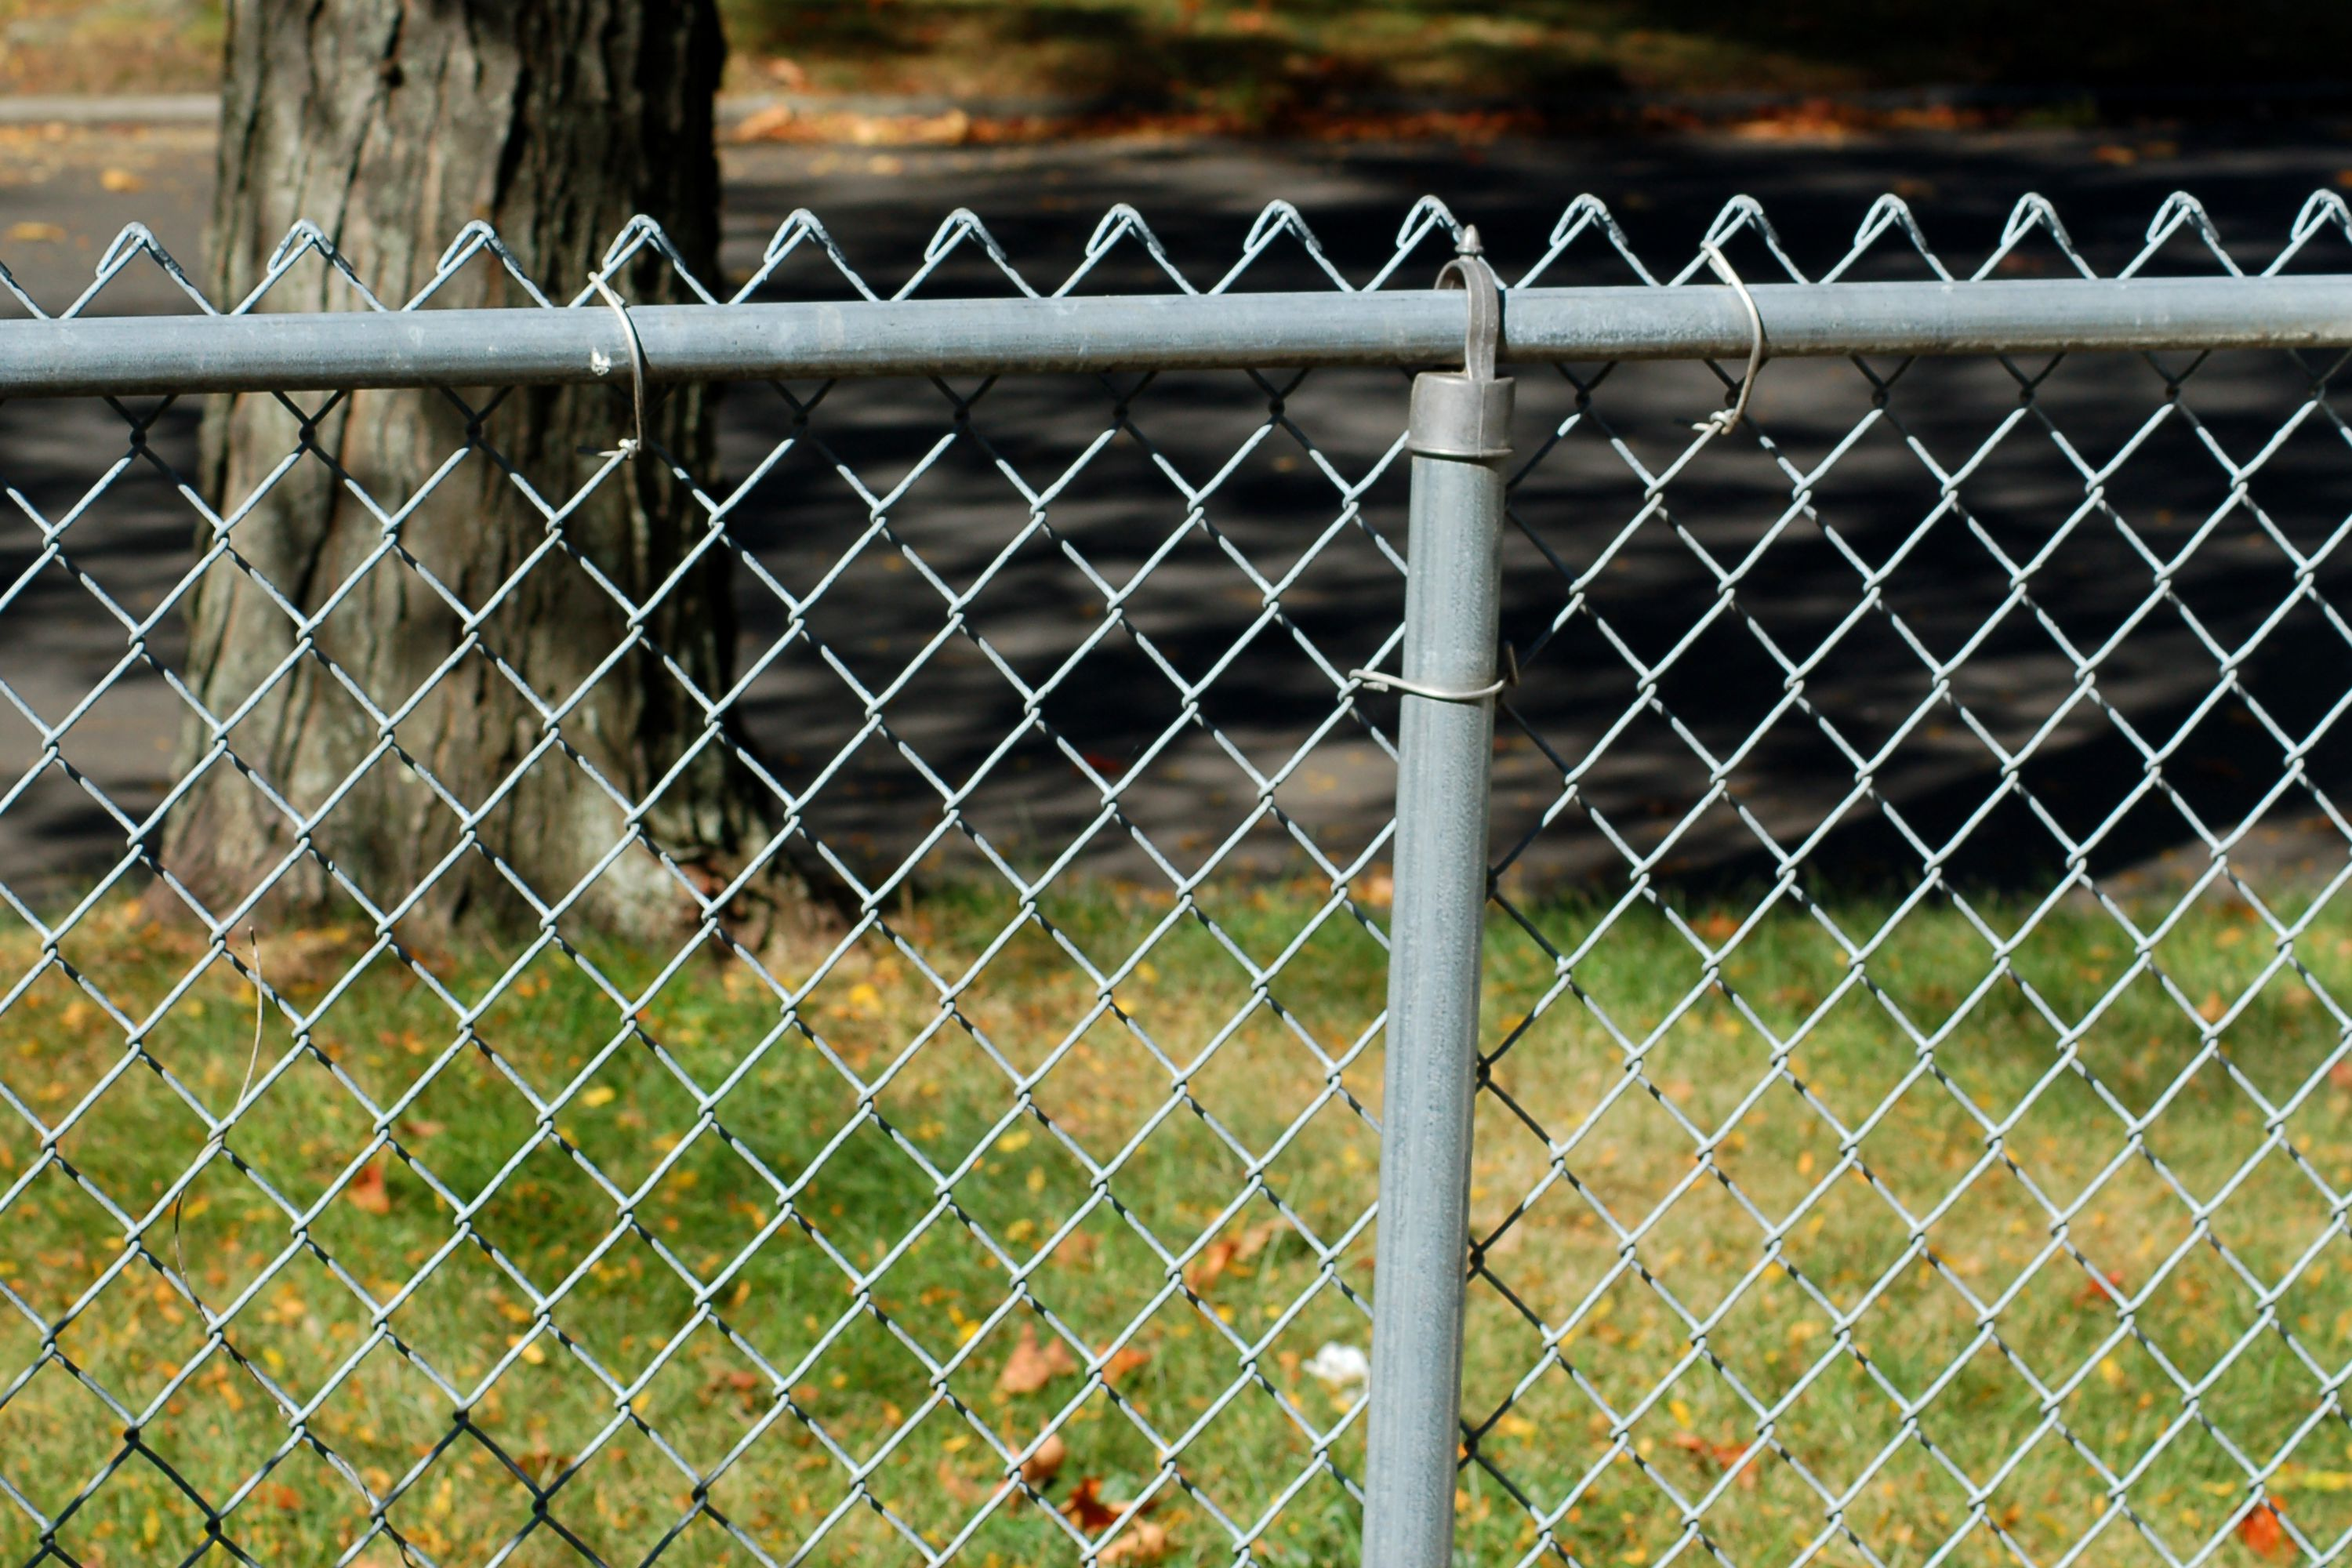 Cost to have a fence installed - Much Despised Chain Link Fencing Does Have Its Virtues